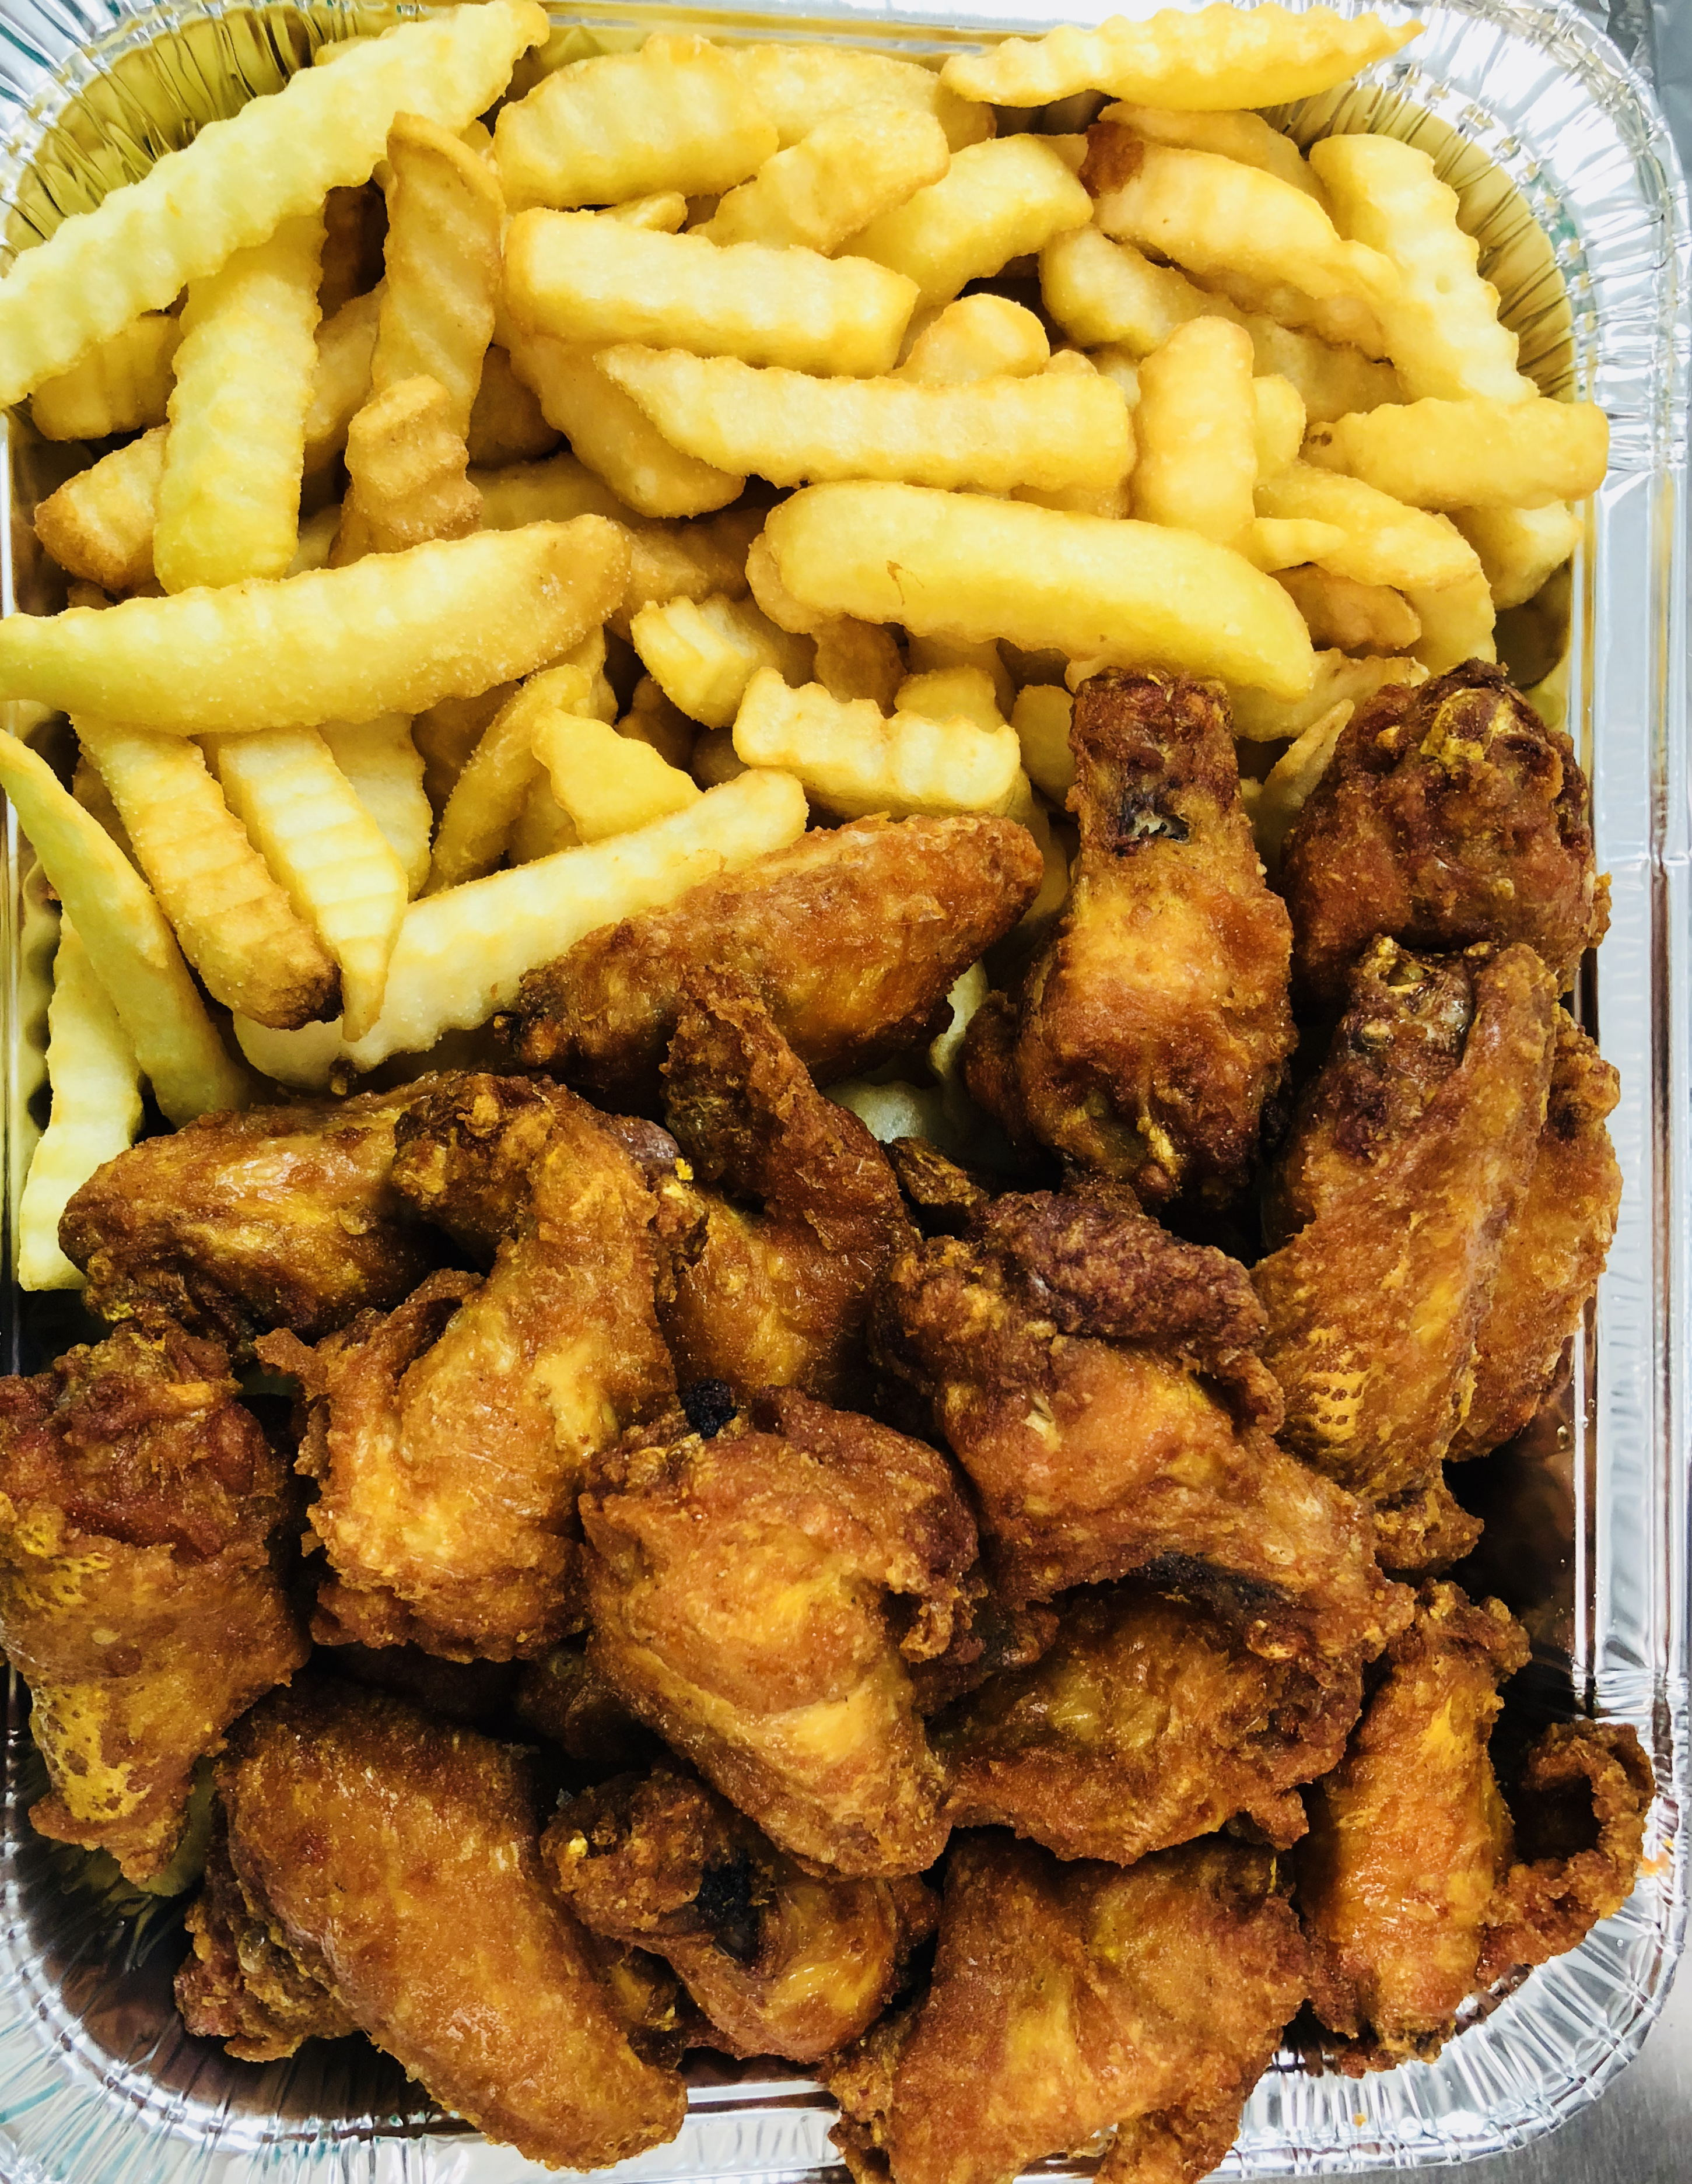 P9. 25 Wings with French Fries